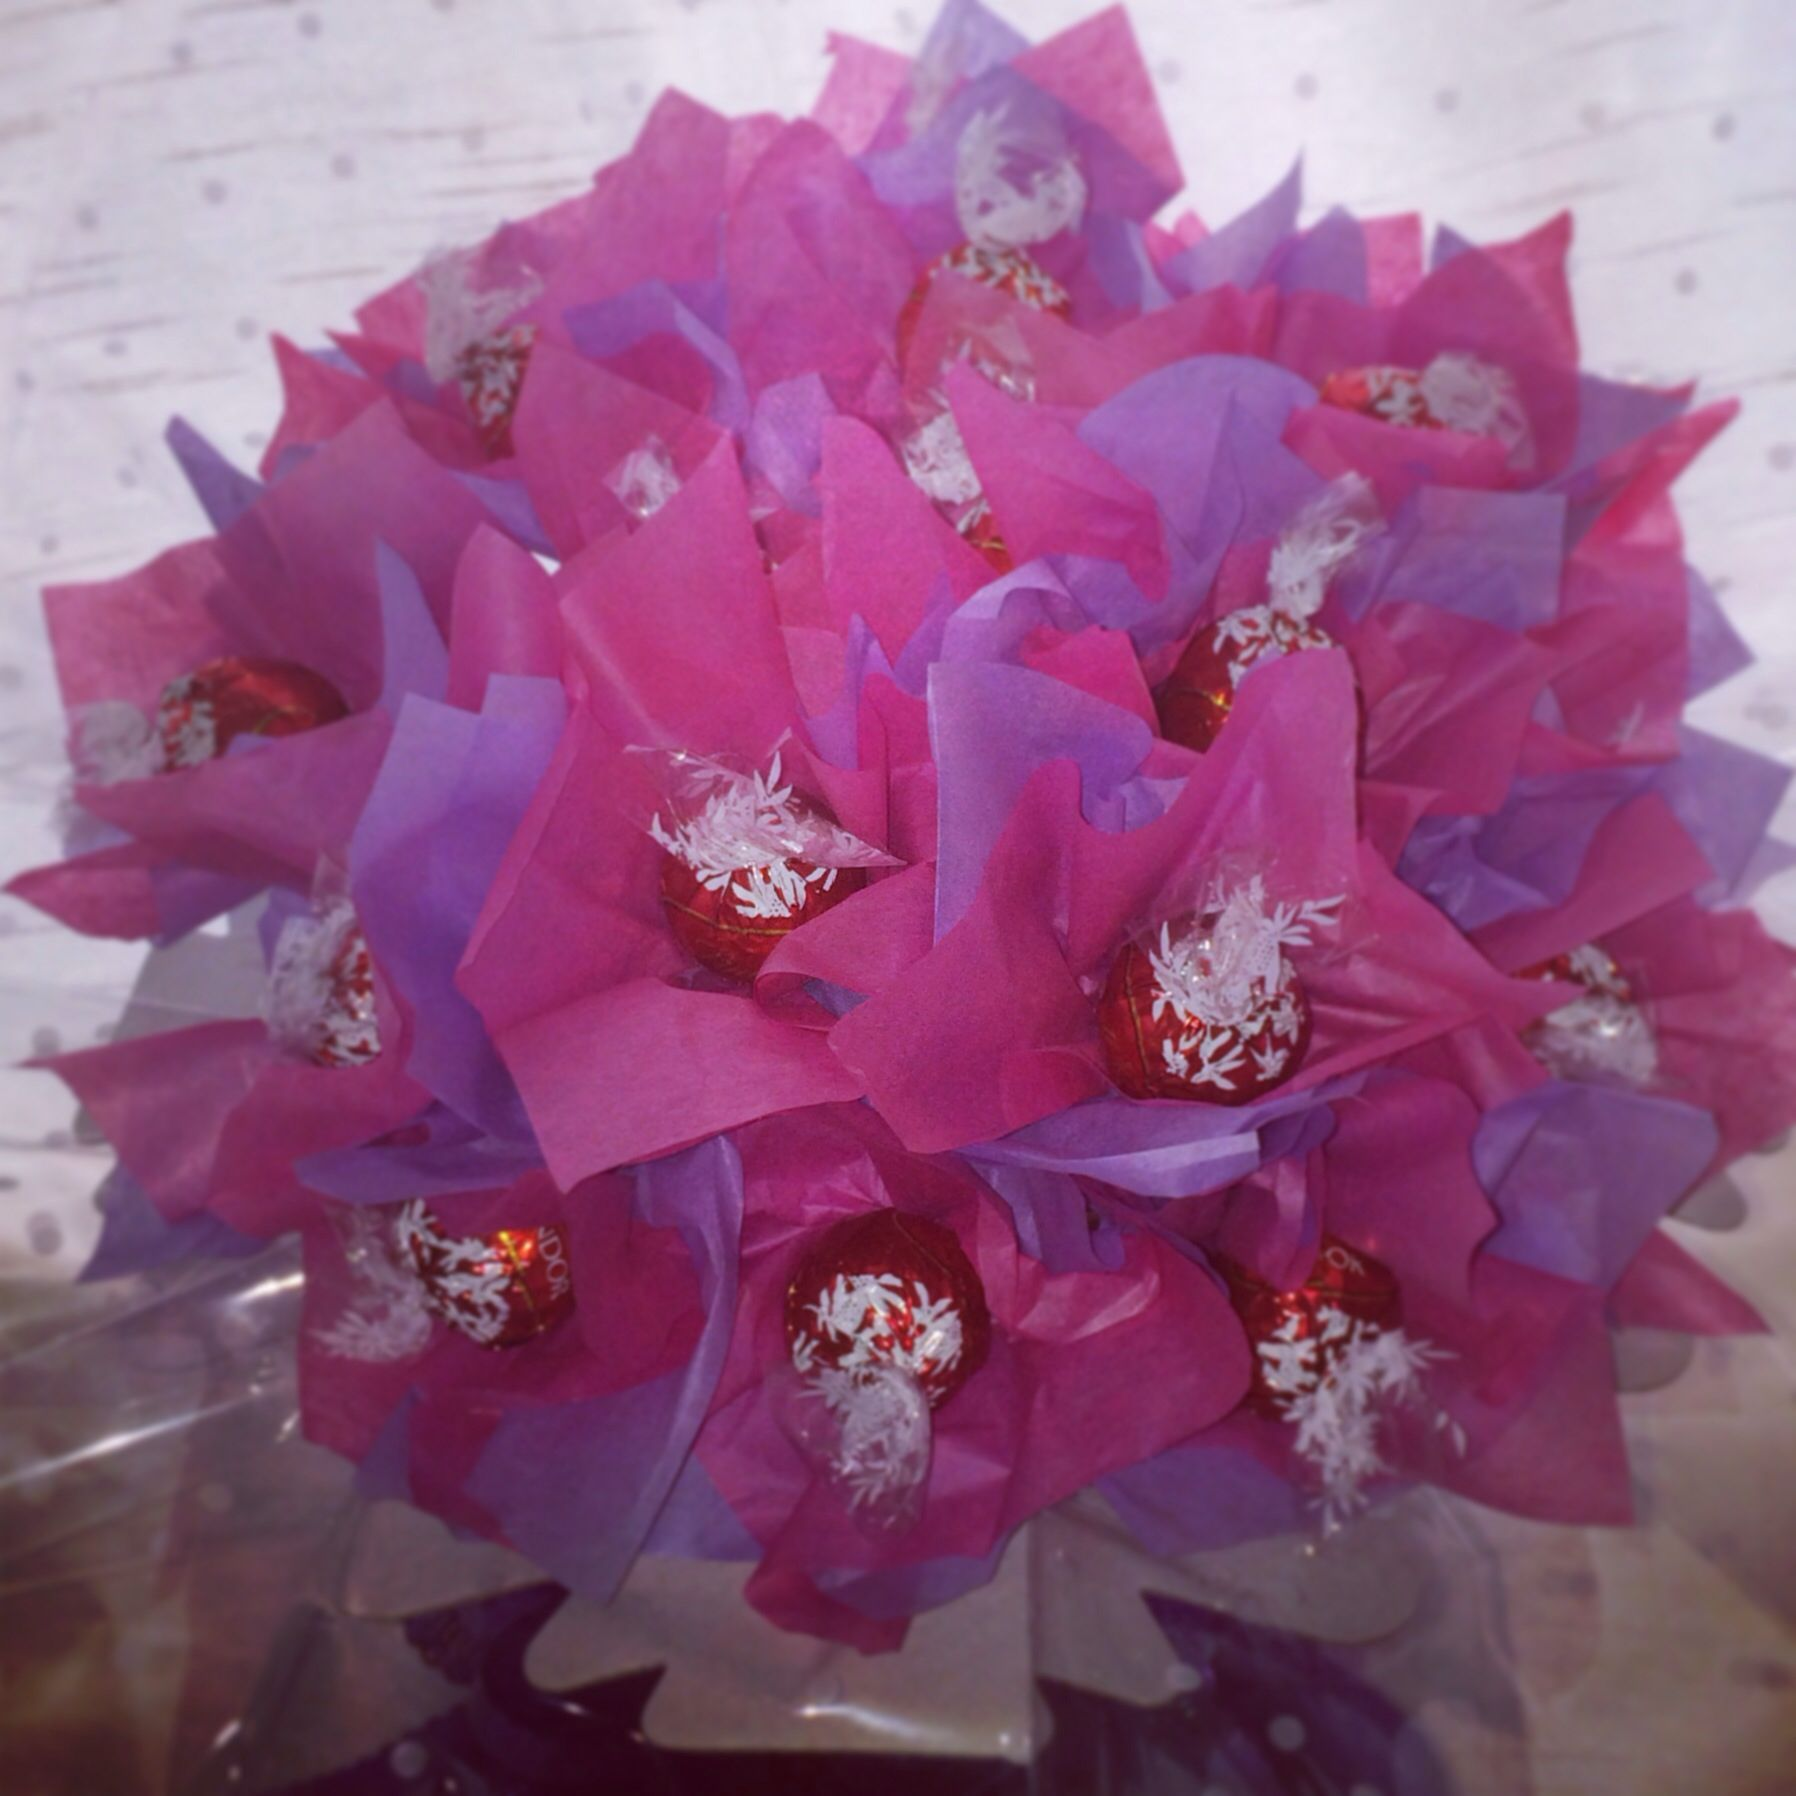 Chocolate bouquet on pinterest candy flowers bouquet of chocolate - Lindt Lindor Chocolate Bouquet Candy Flowerschocolate